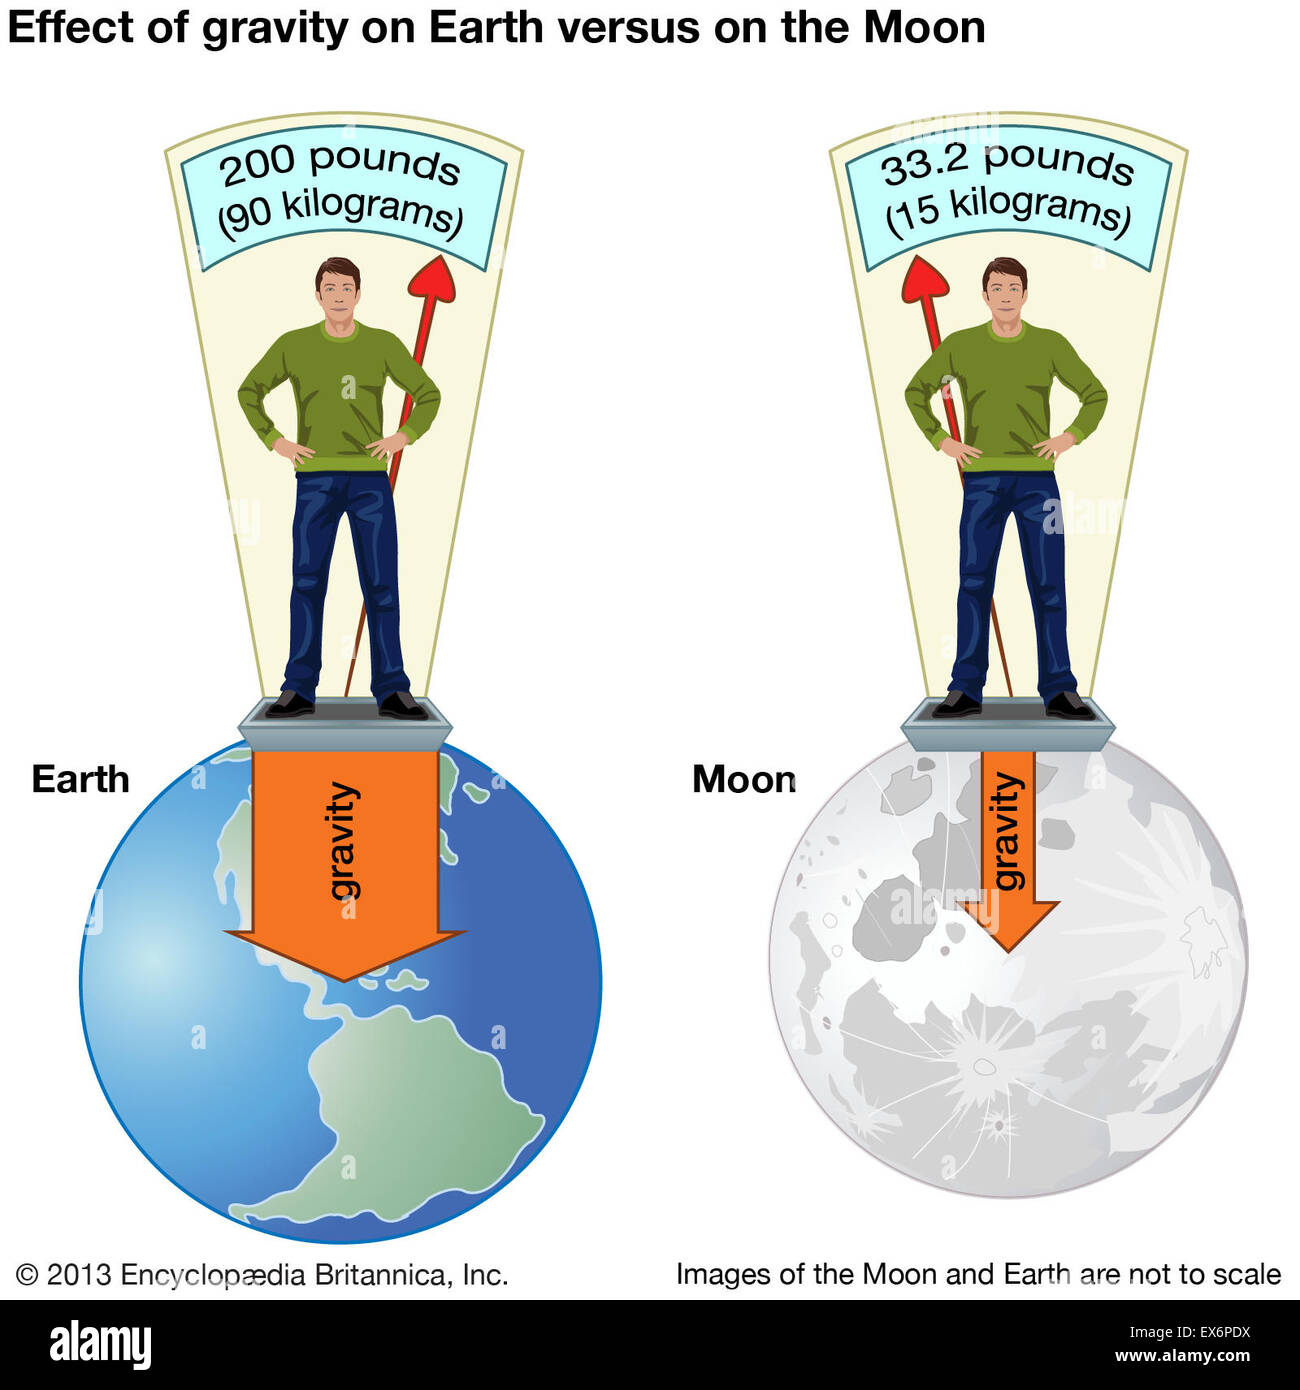 Effect of gravity on Earth versus on the Moon - Stock Image